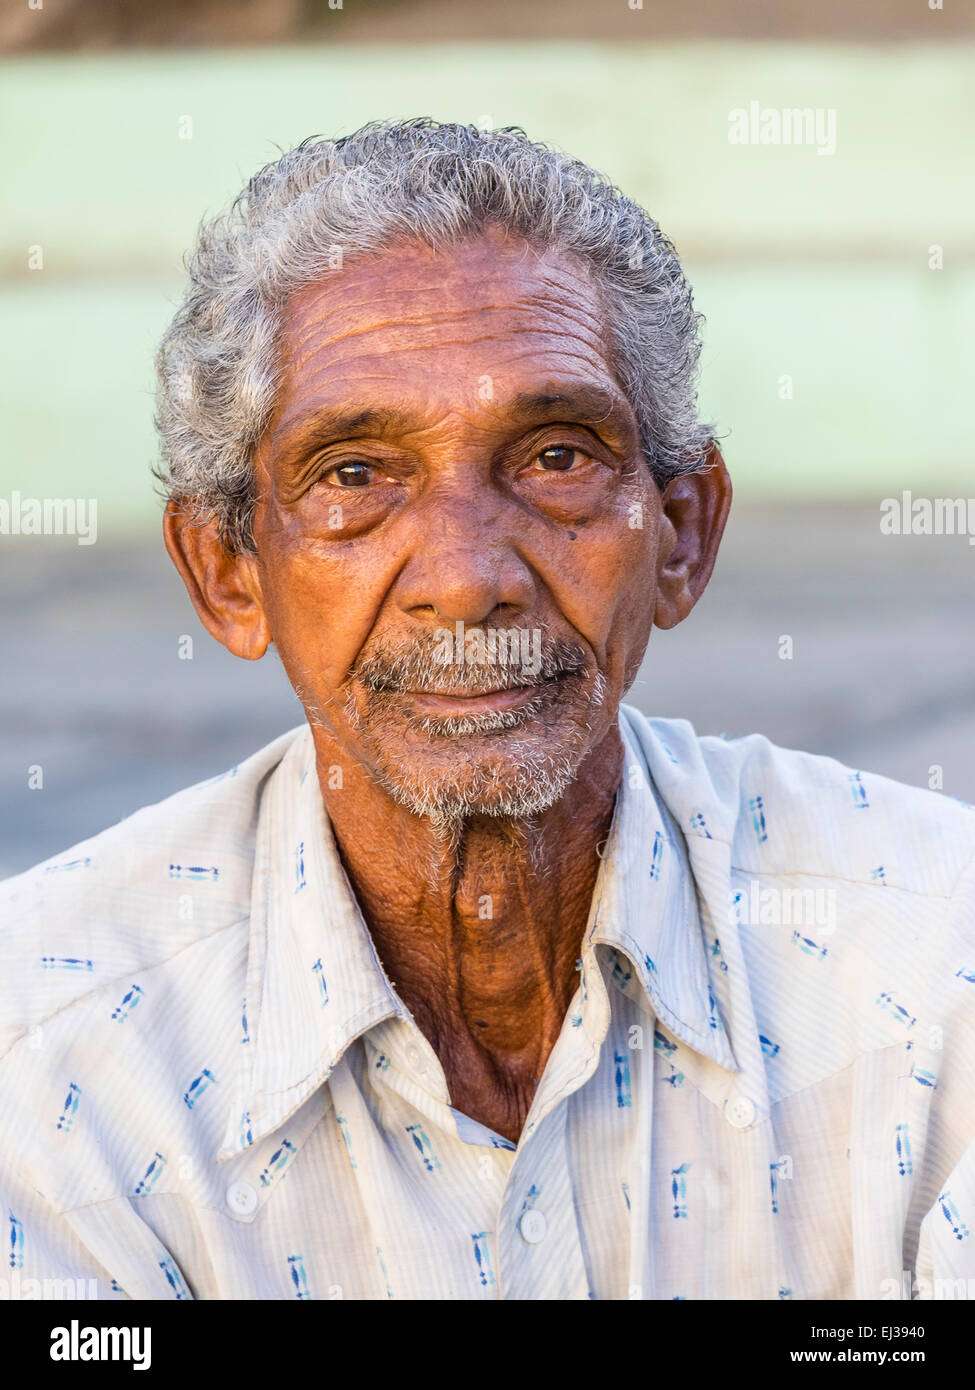 A head and shoulders close-up of Afro-Cuban male senior citizen not smiling. - Stock Image